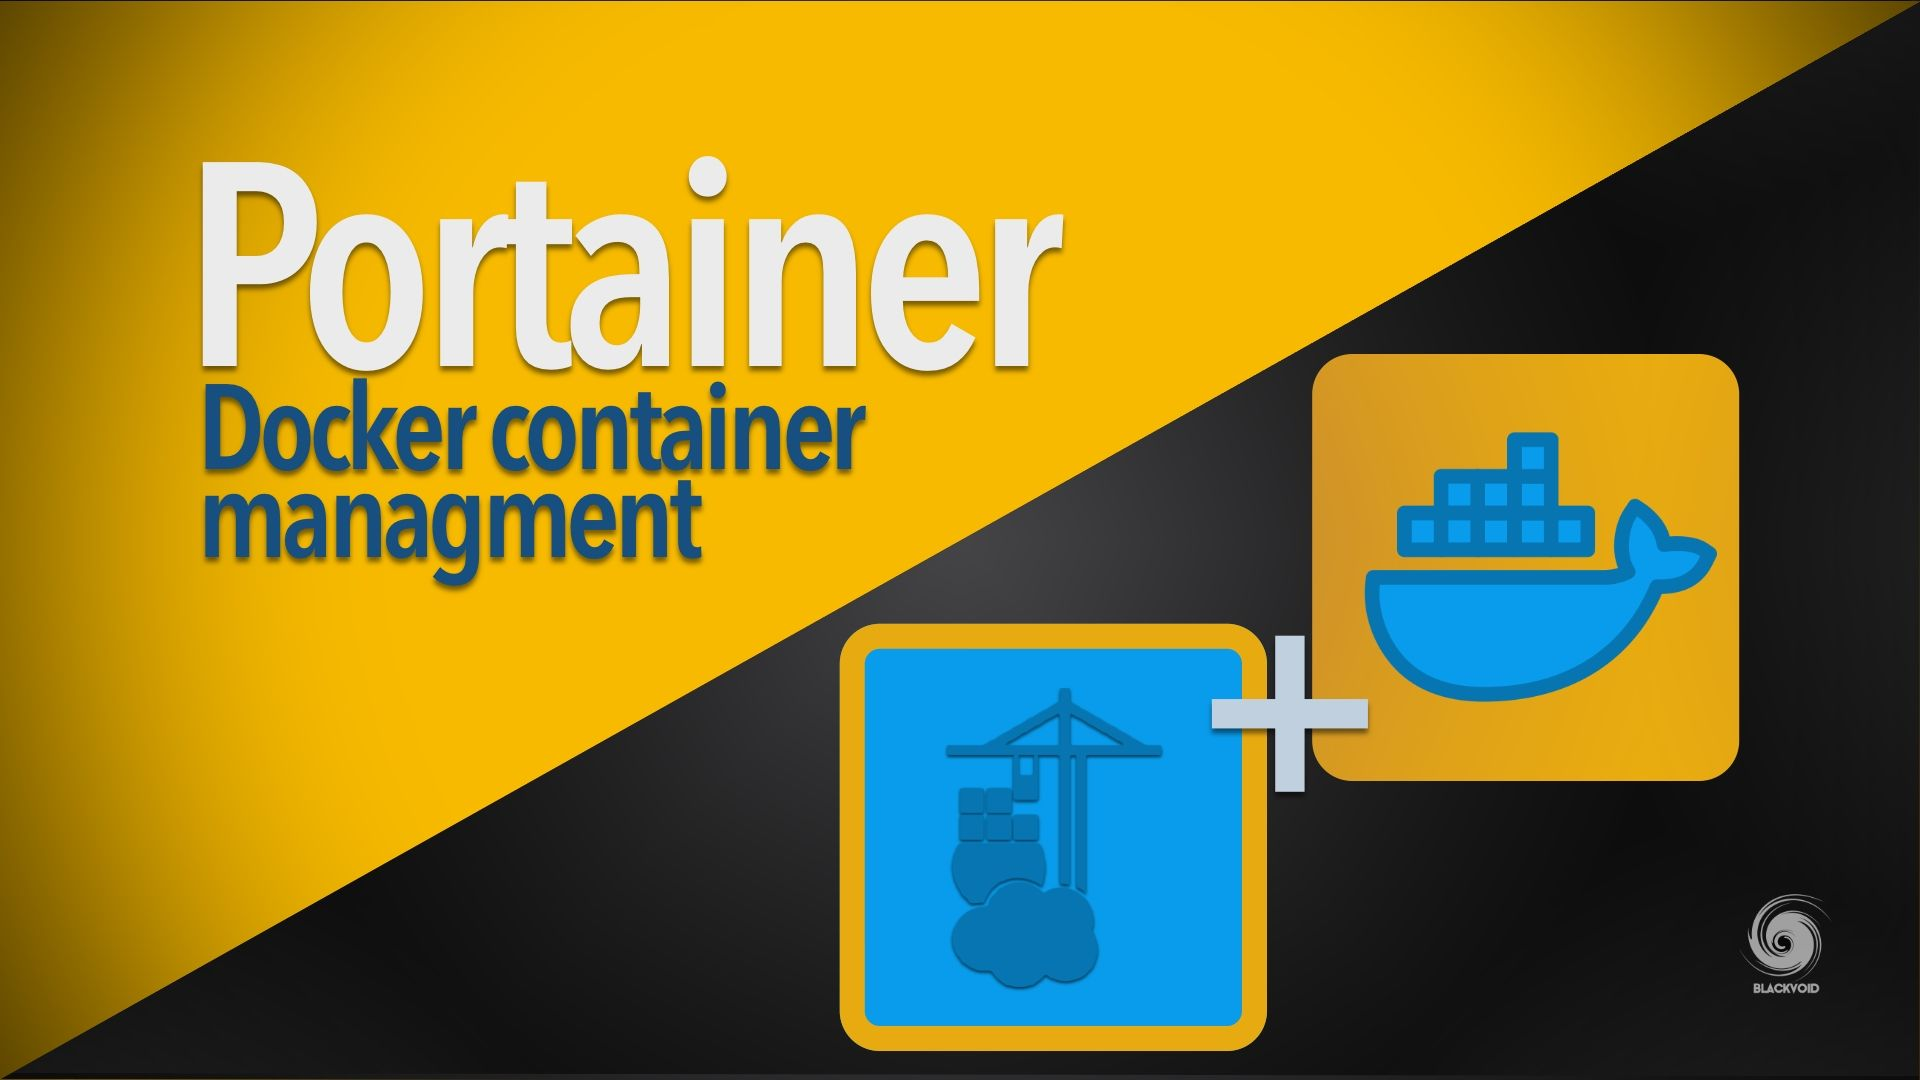 Portainer - Docker container managment made easy